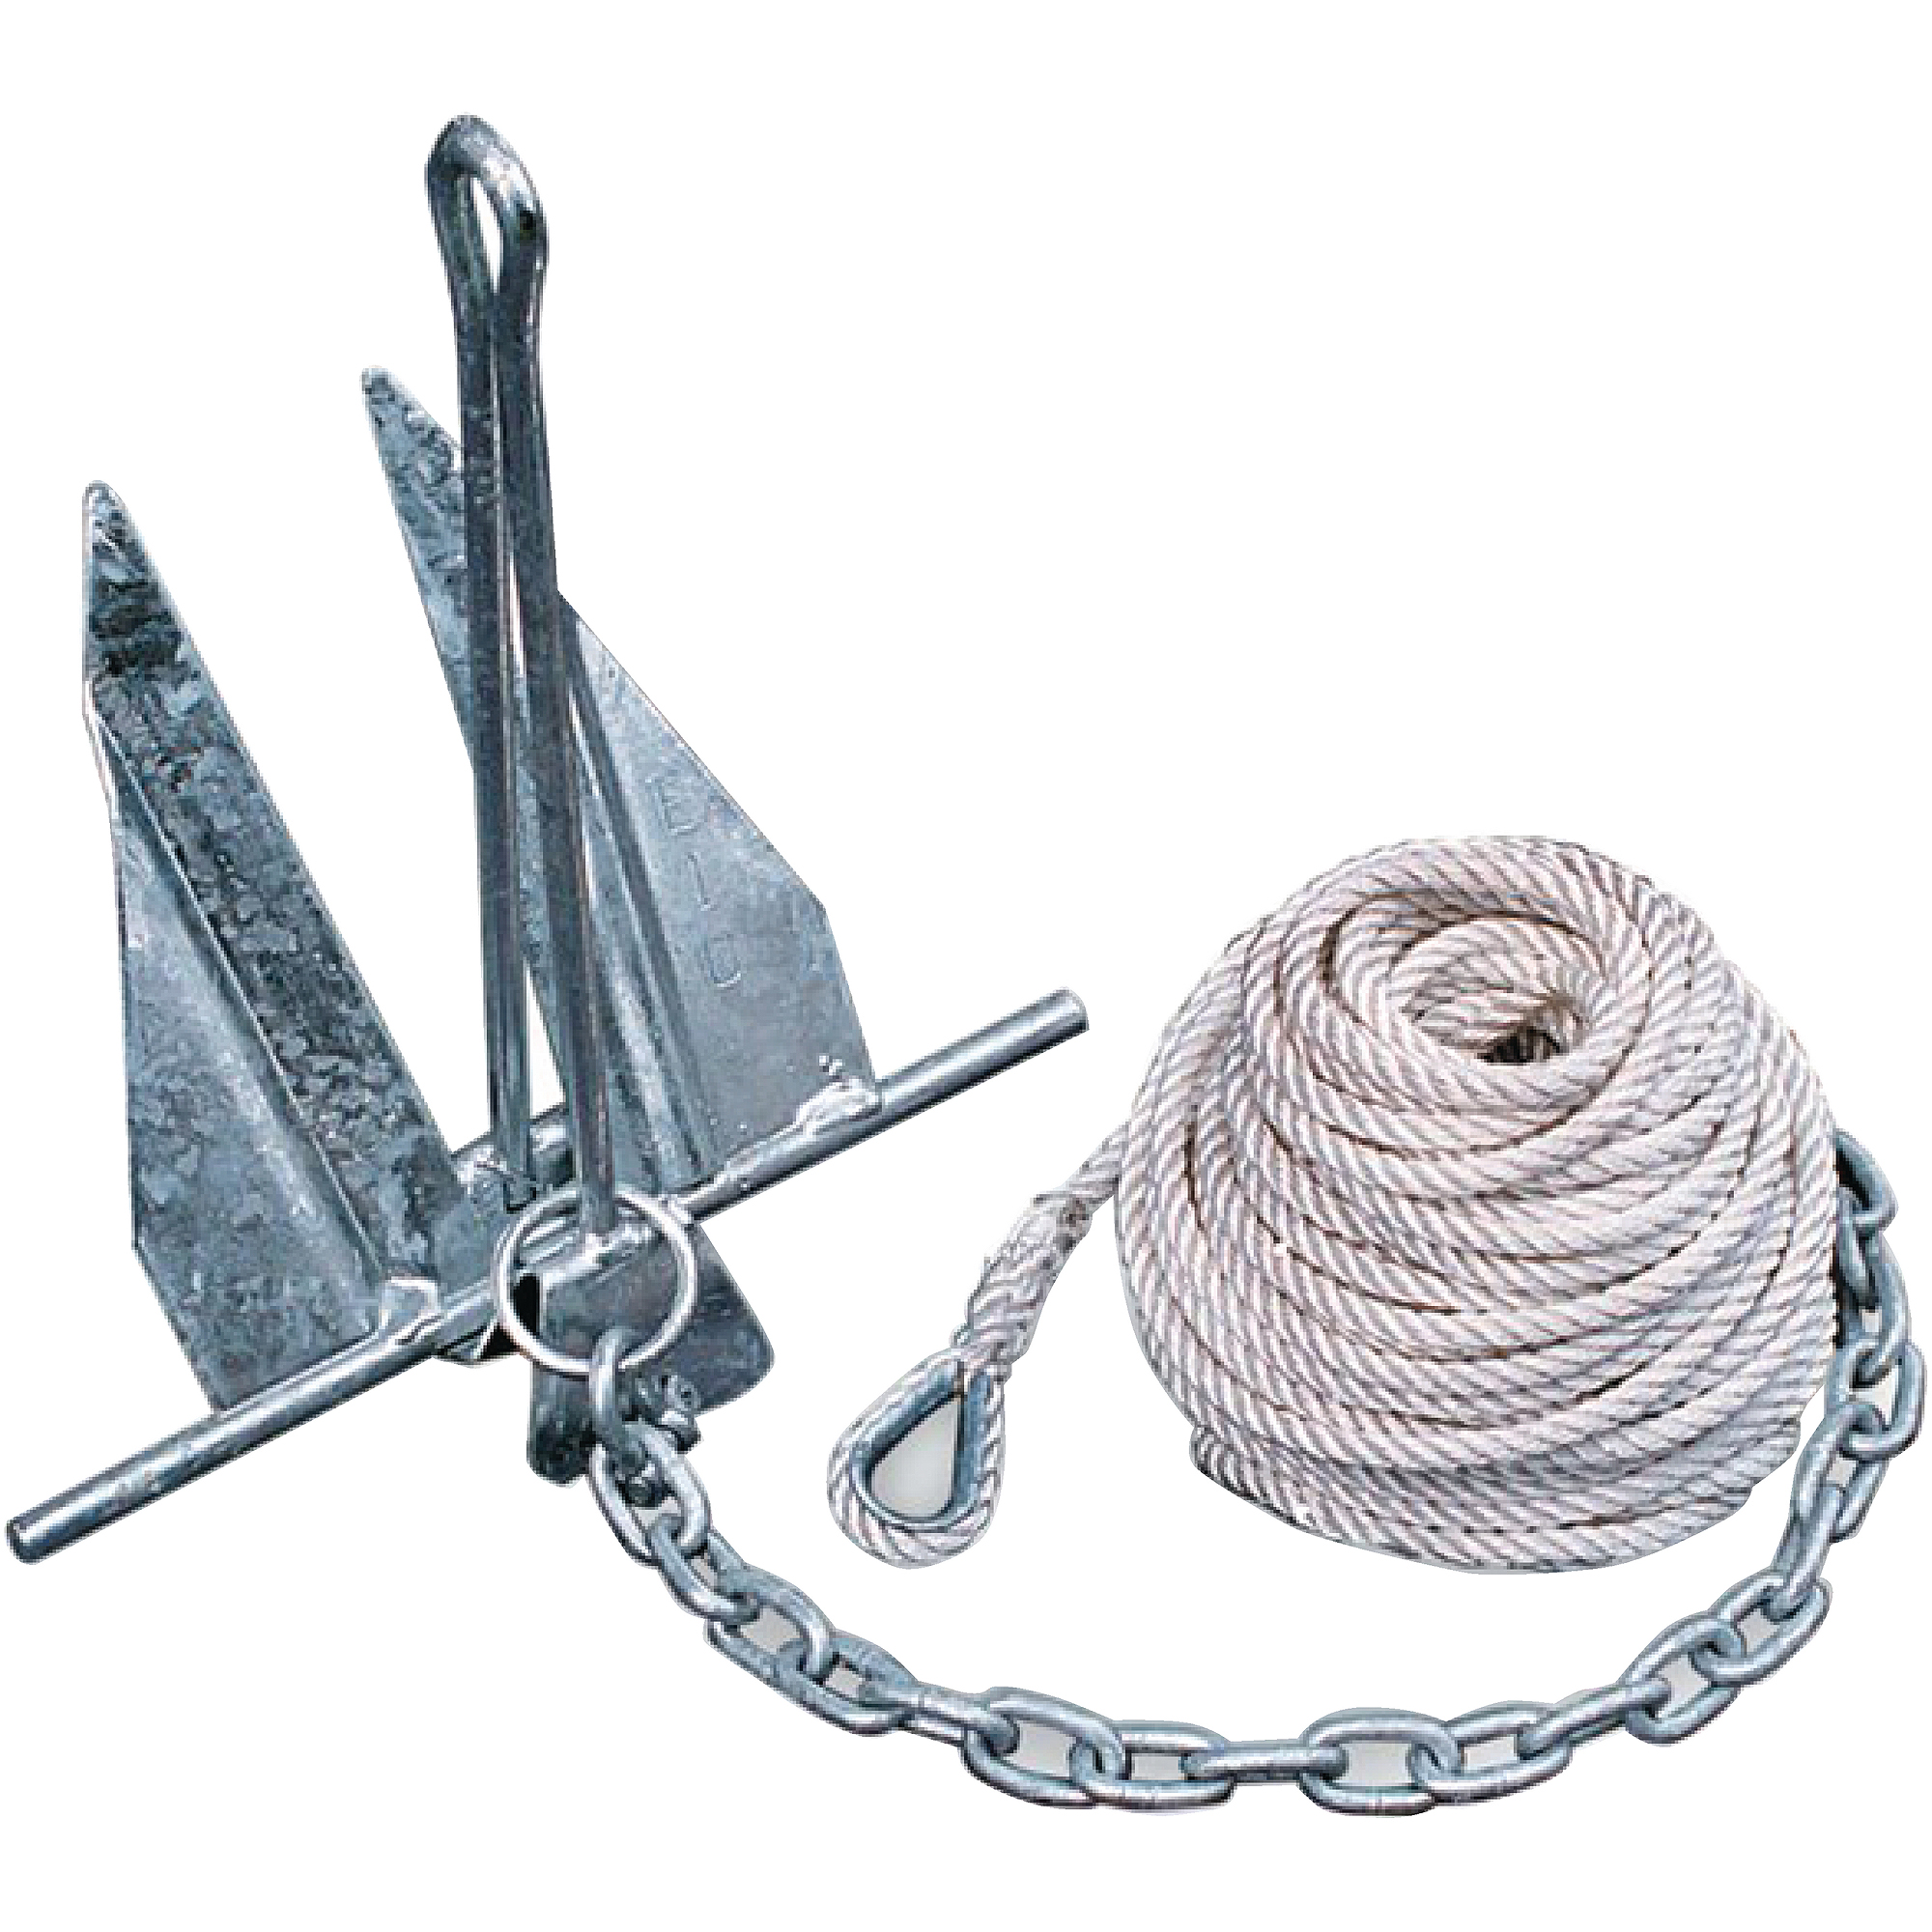 Tie Down Engineering Quik-Set Hooker Anchor Kit Includes 5# Anchor, Anchor Line, Anchor Chain and 2 Shackles